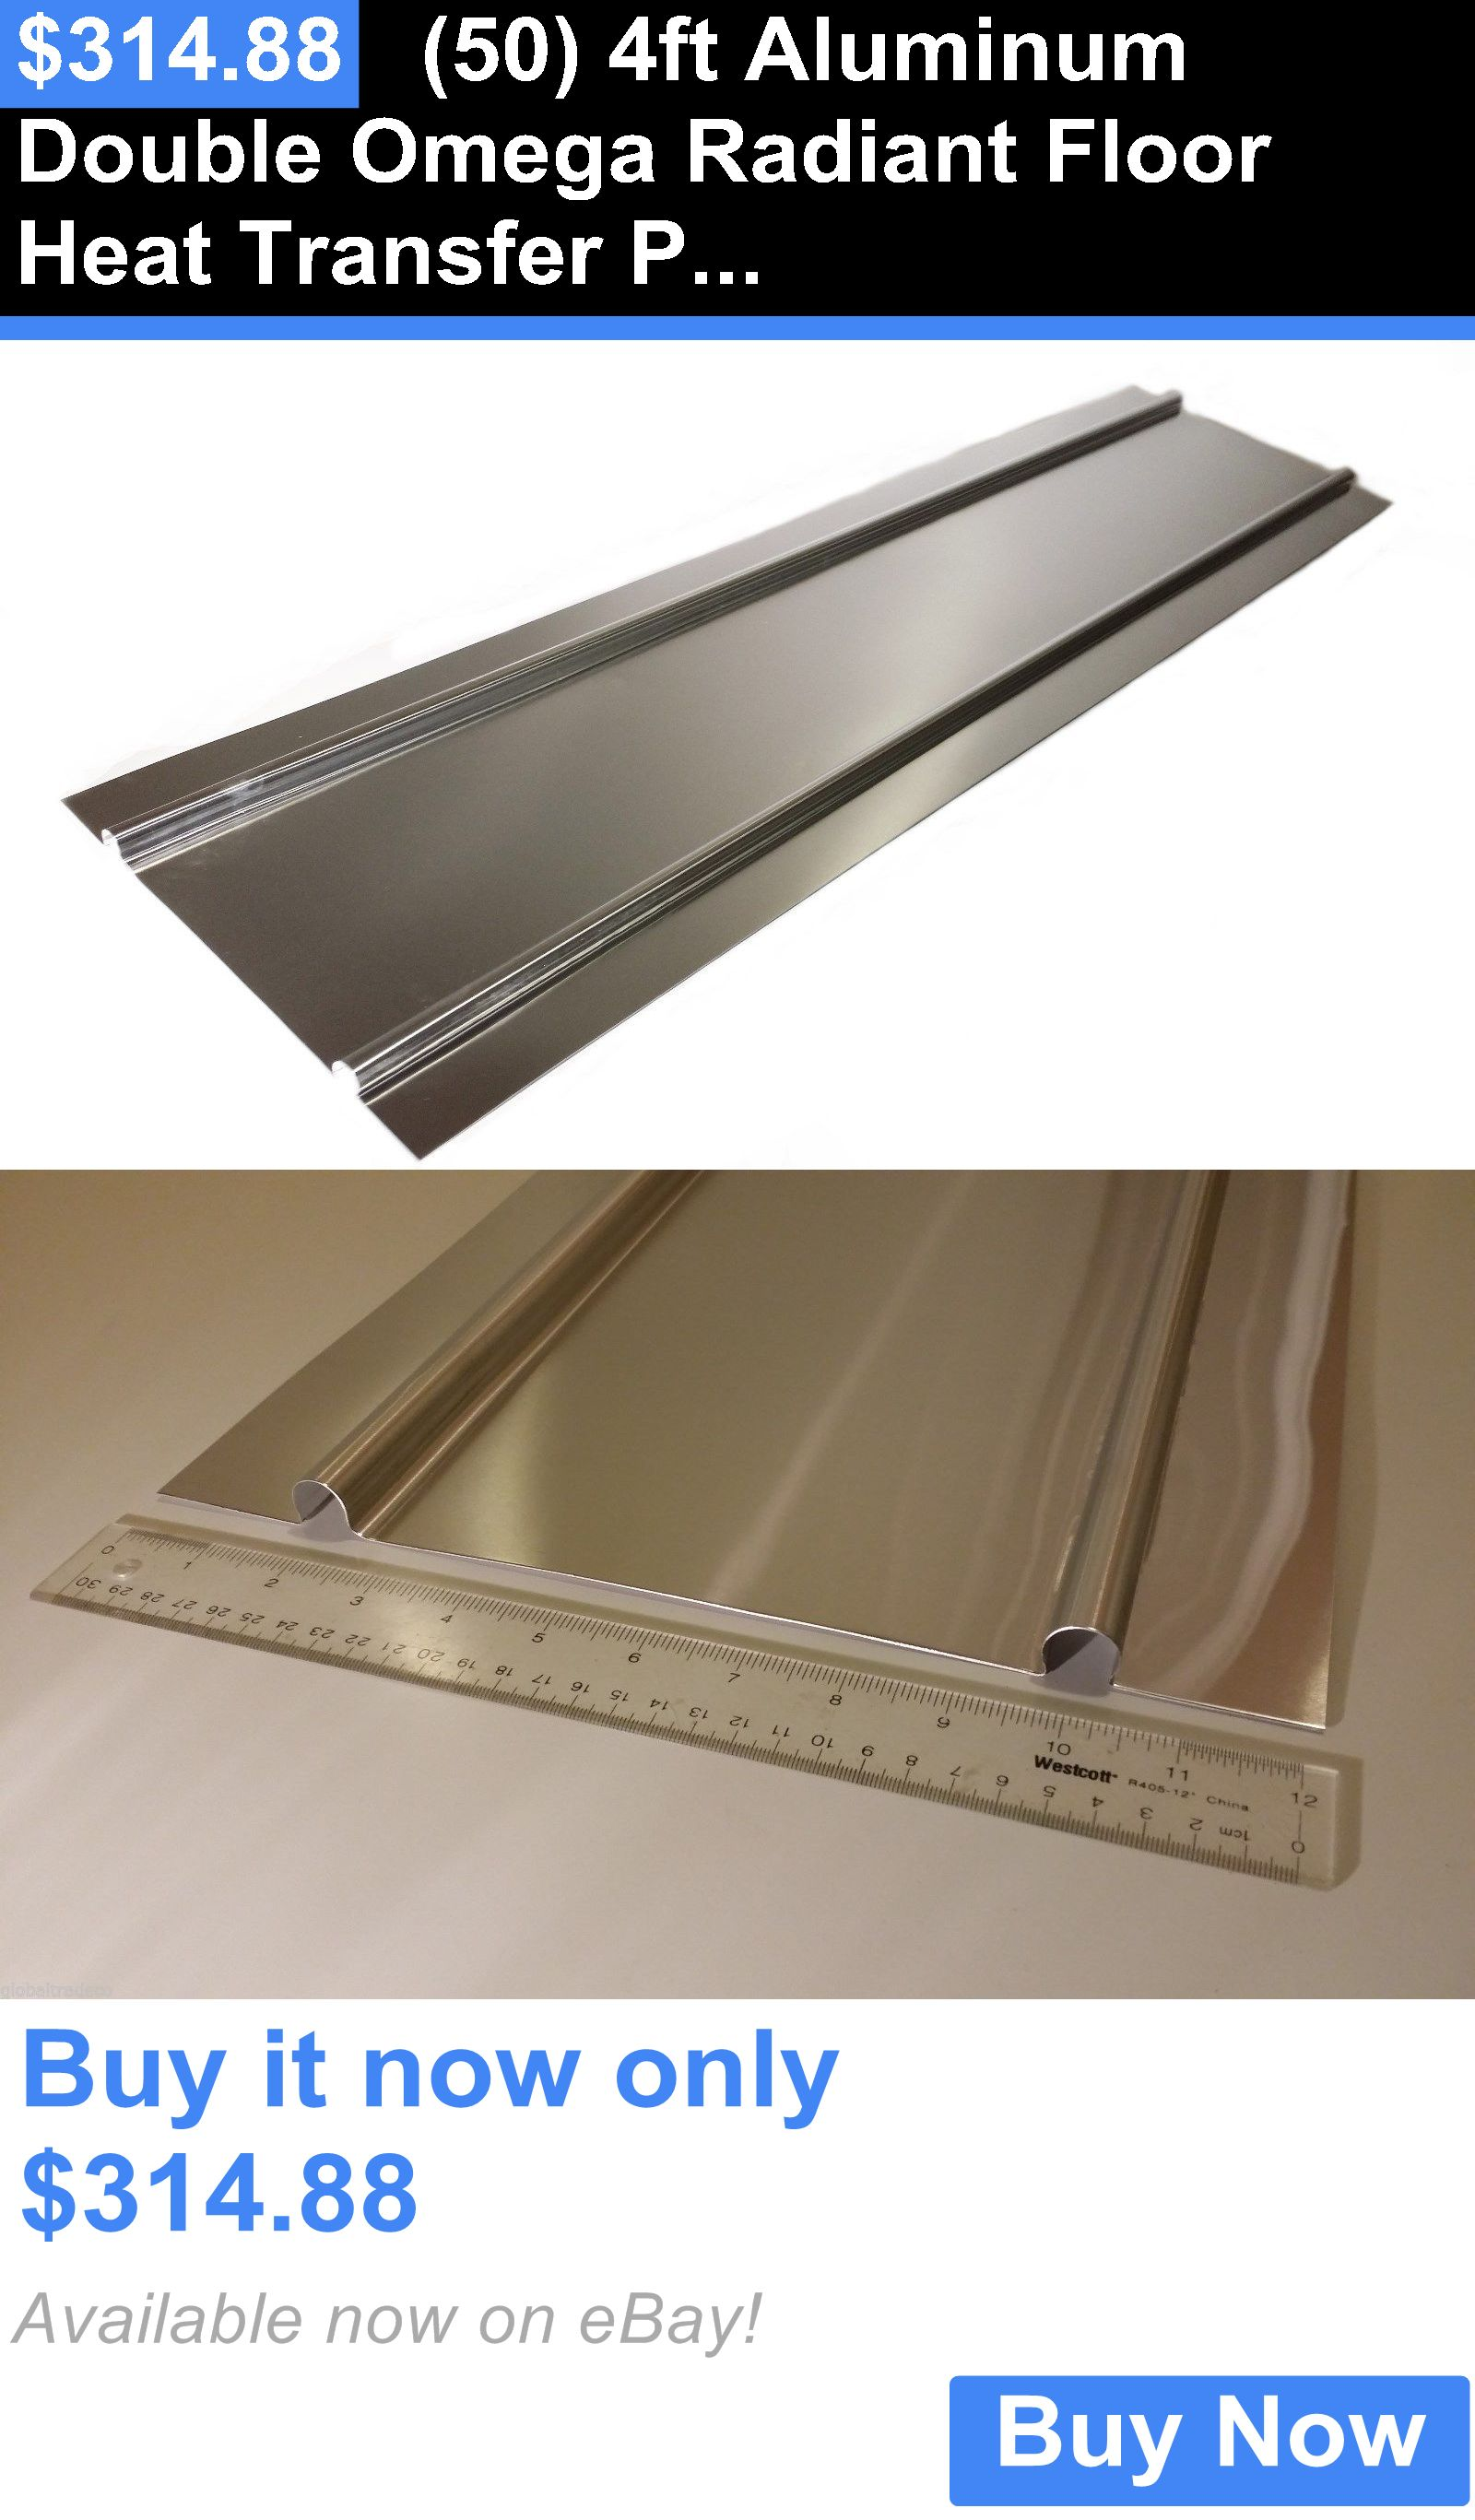 Materials 50 4Ft Aluminum Double Omega Radiant Floor Heat